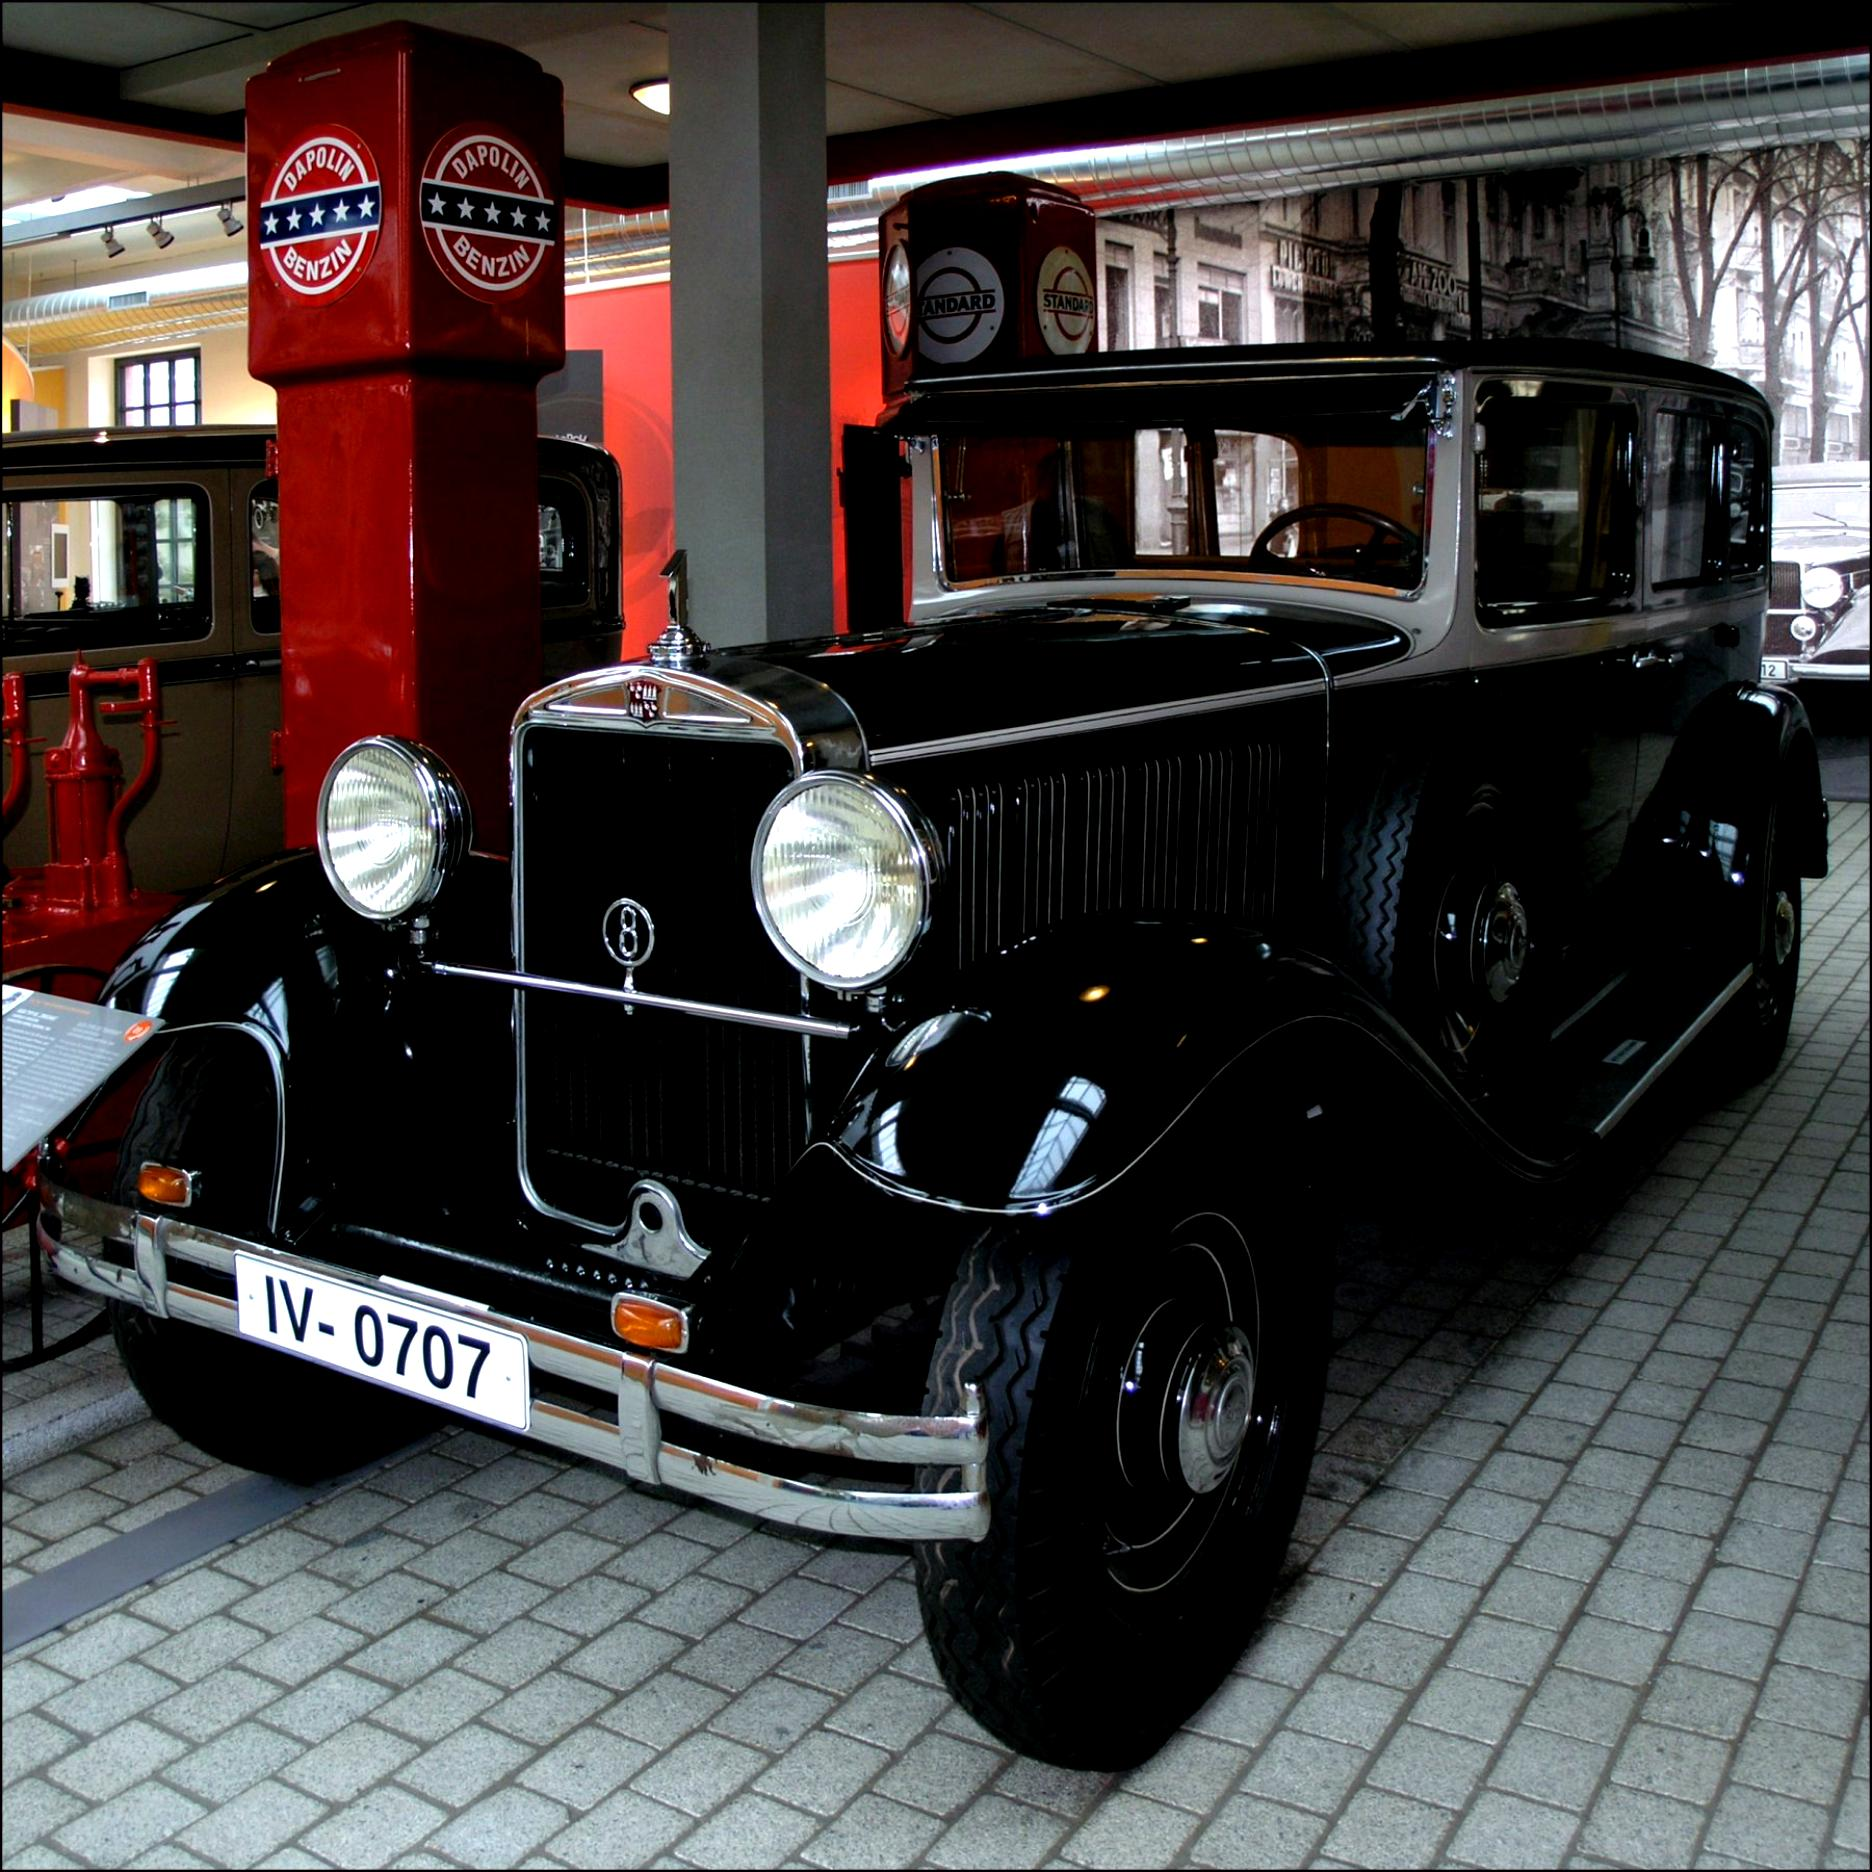 Audi typ r imperator 1927 on motoimg r imperator phaeton 1929 other cars audi typ r imperator phaeton 1929 audi v8 1988 bentley arnage blue train series 2005 bentley arnage limousine vanachro Images